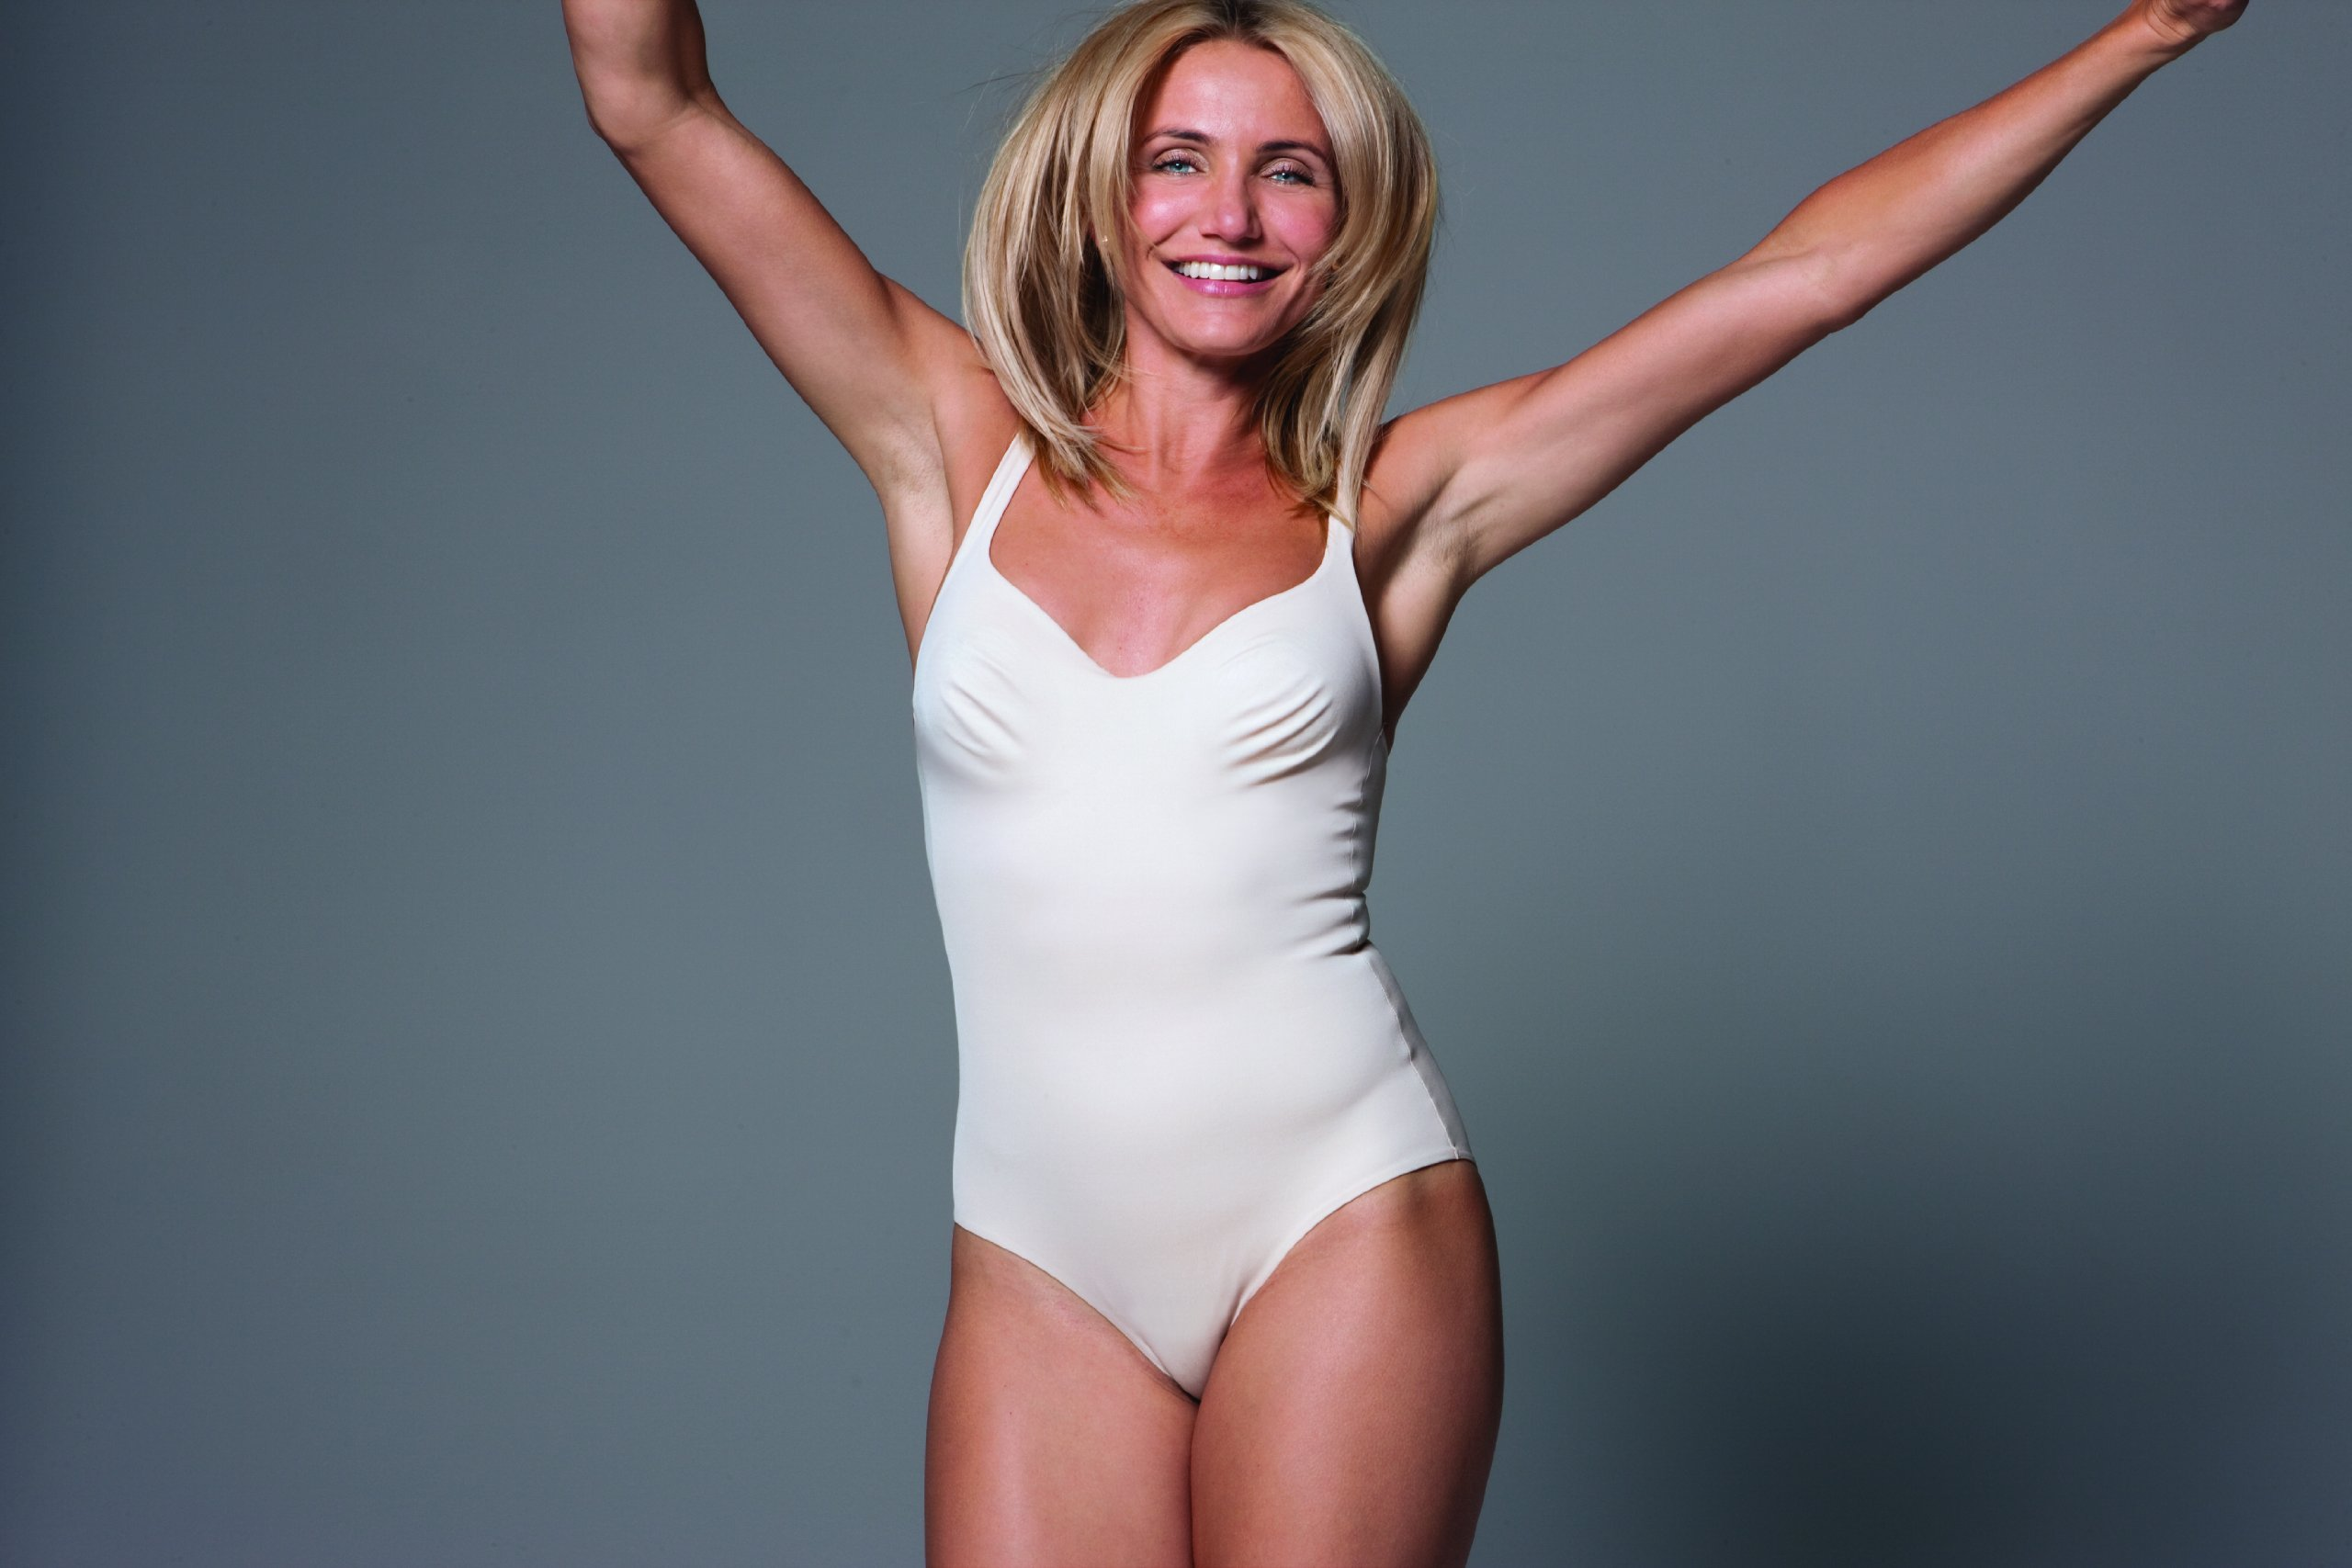 Cameron Diaz Height, Weight, Age and Body Measurements